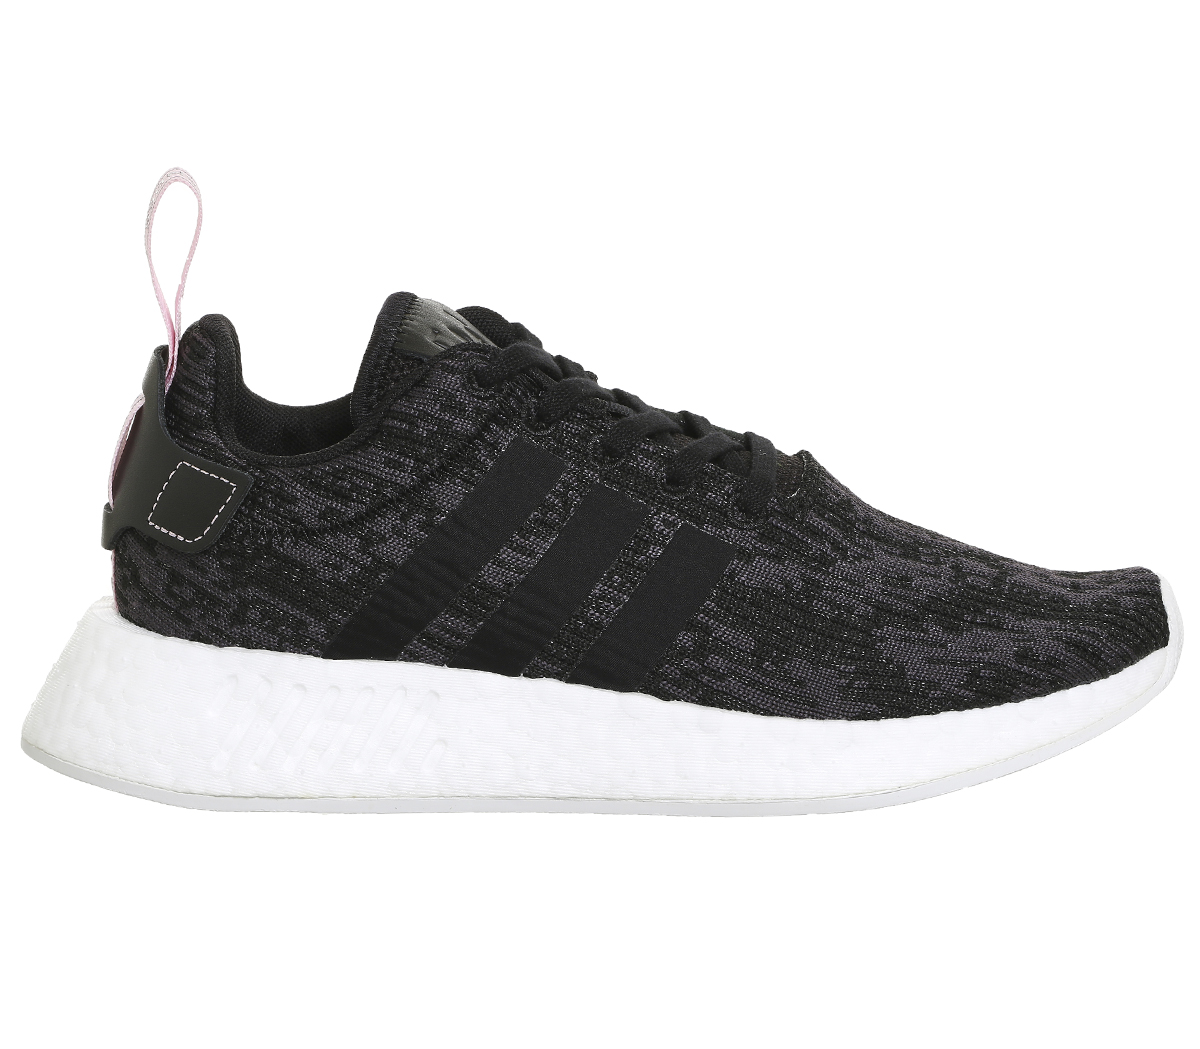 Womens-Adidas-NMD-r2-Black-Black-White-Wonder-